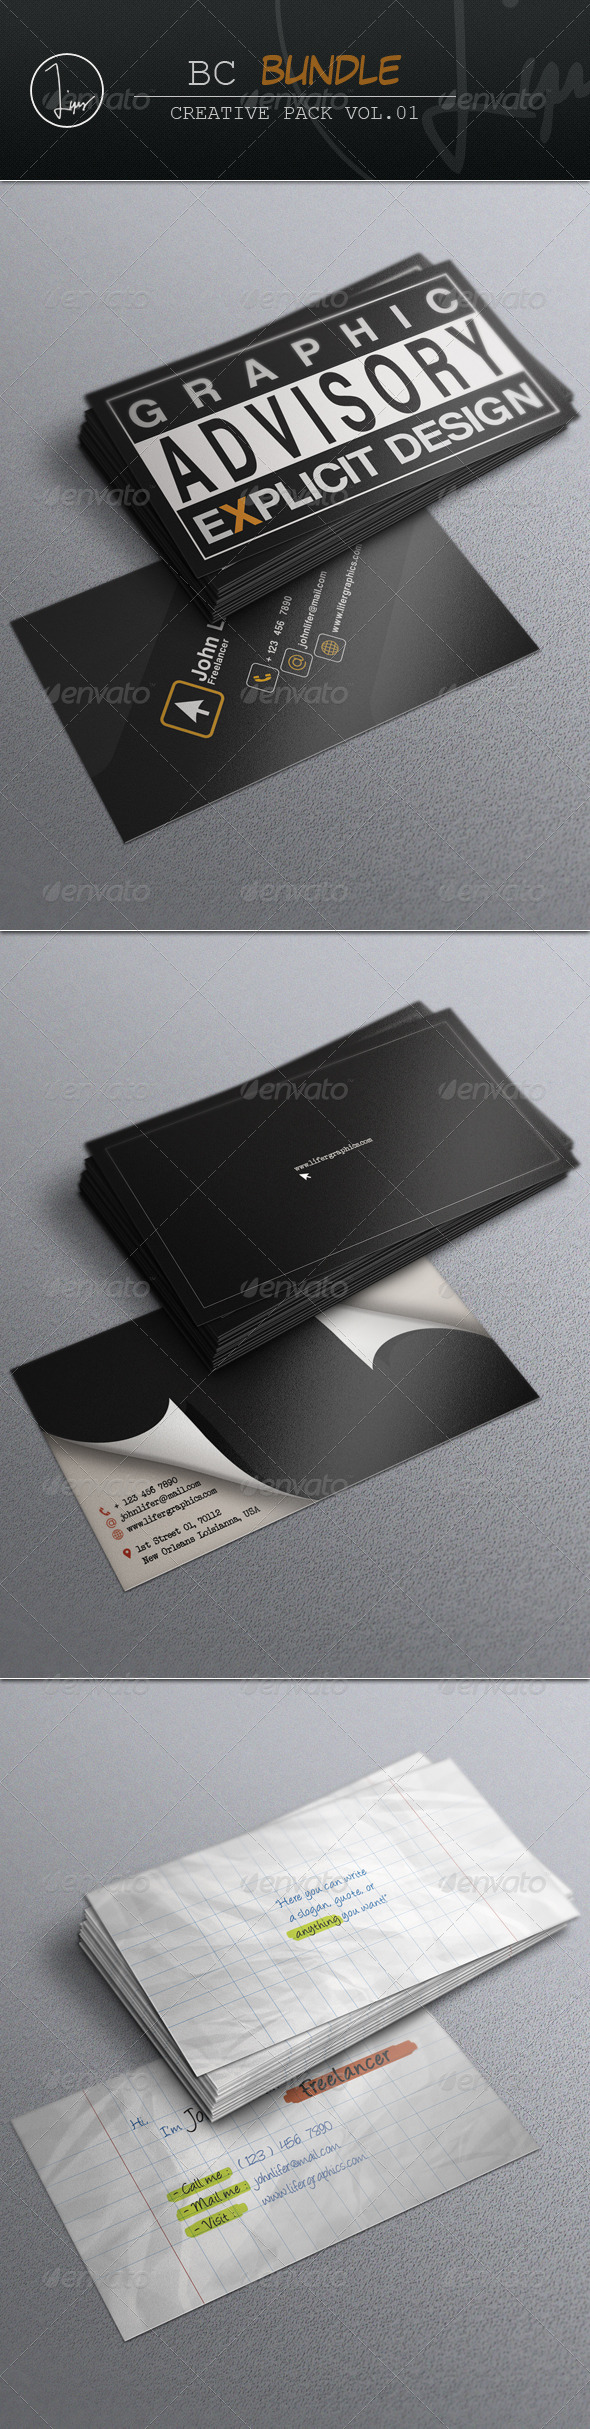 Business Card Bundle Vol.01 - Business Cards Print Templates